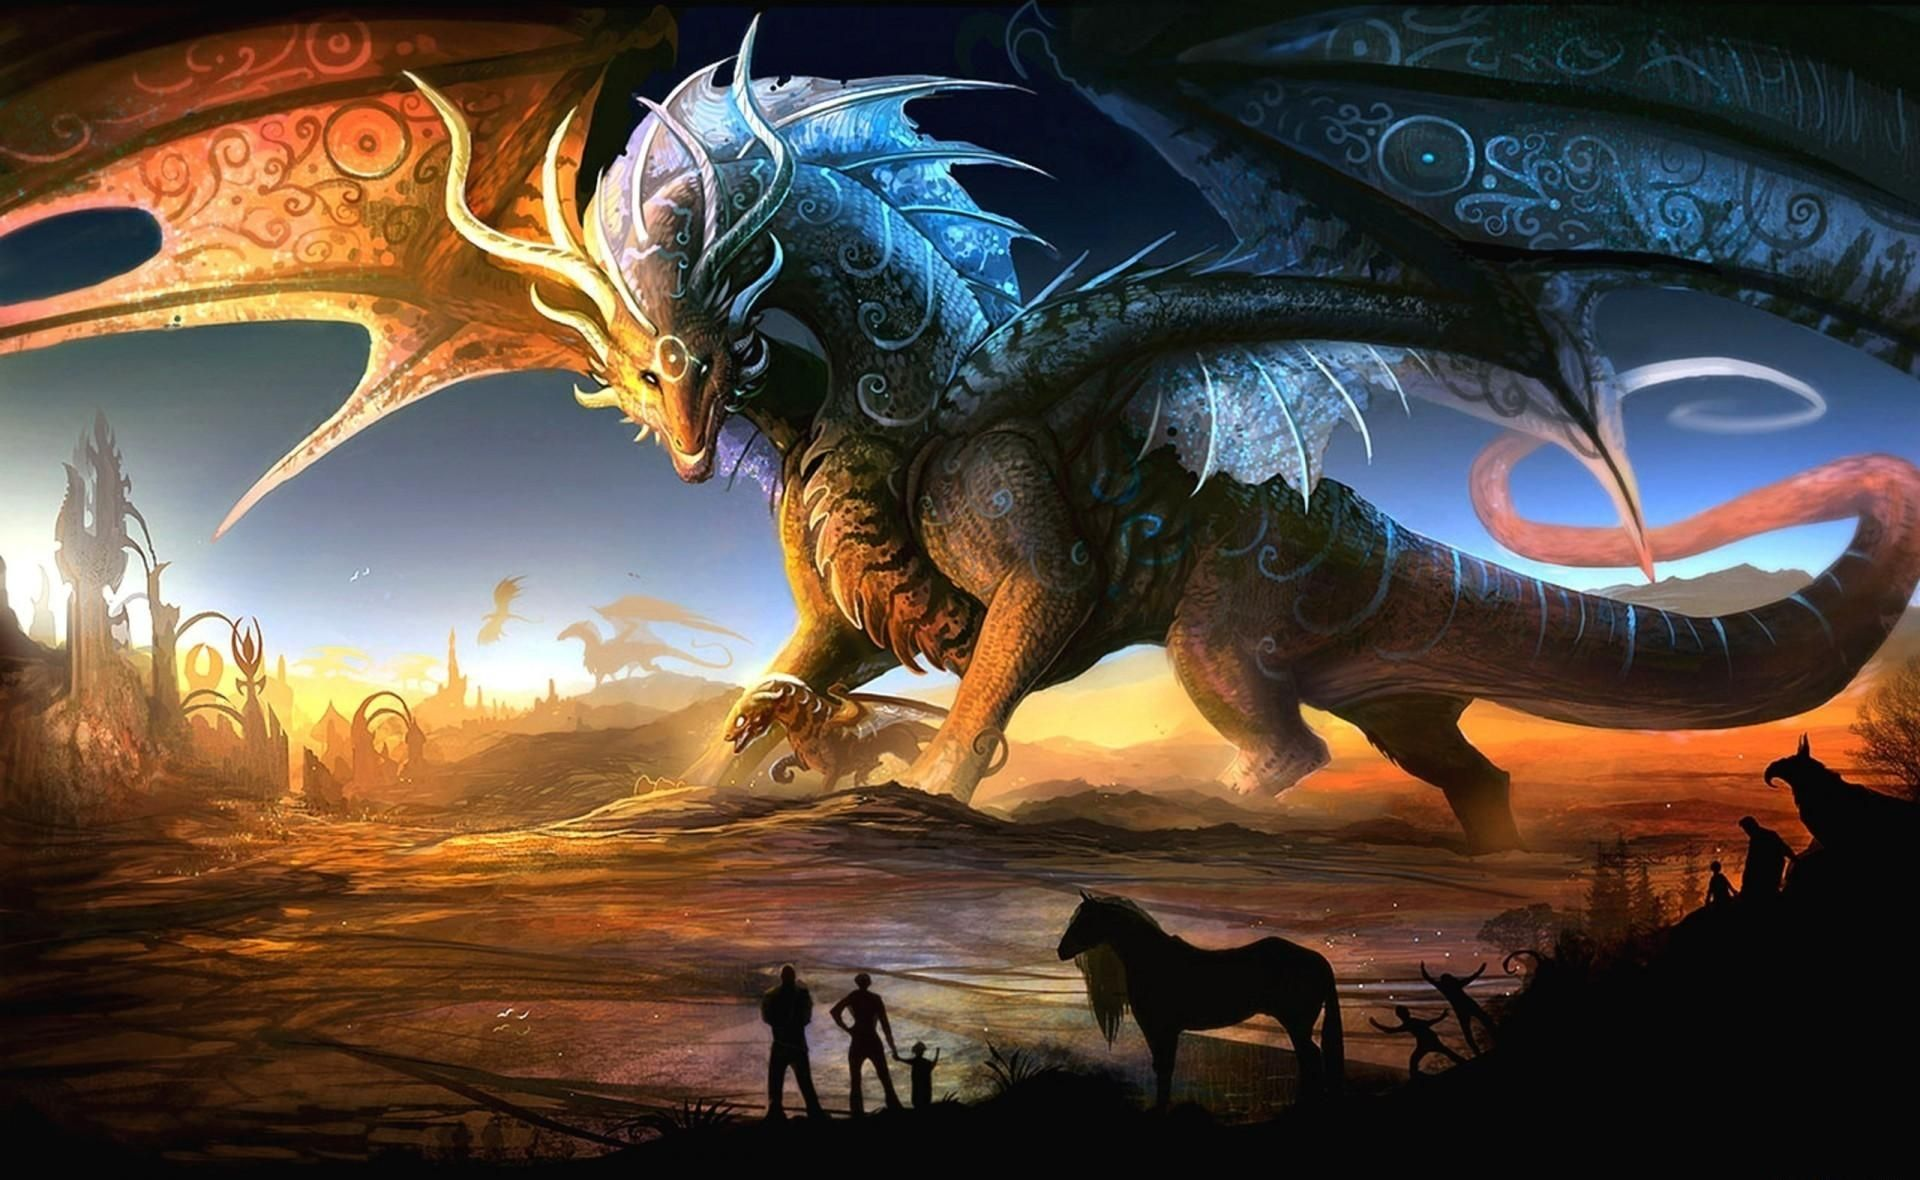 Free Dragon Wallpaper Hd Mythical Creatures Fantasy Dragon Desert Art